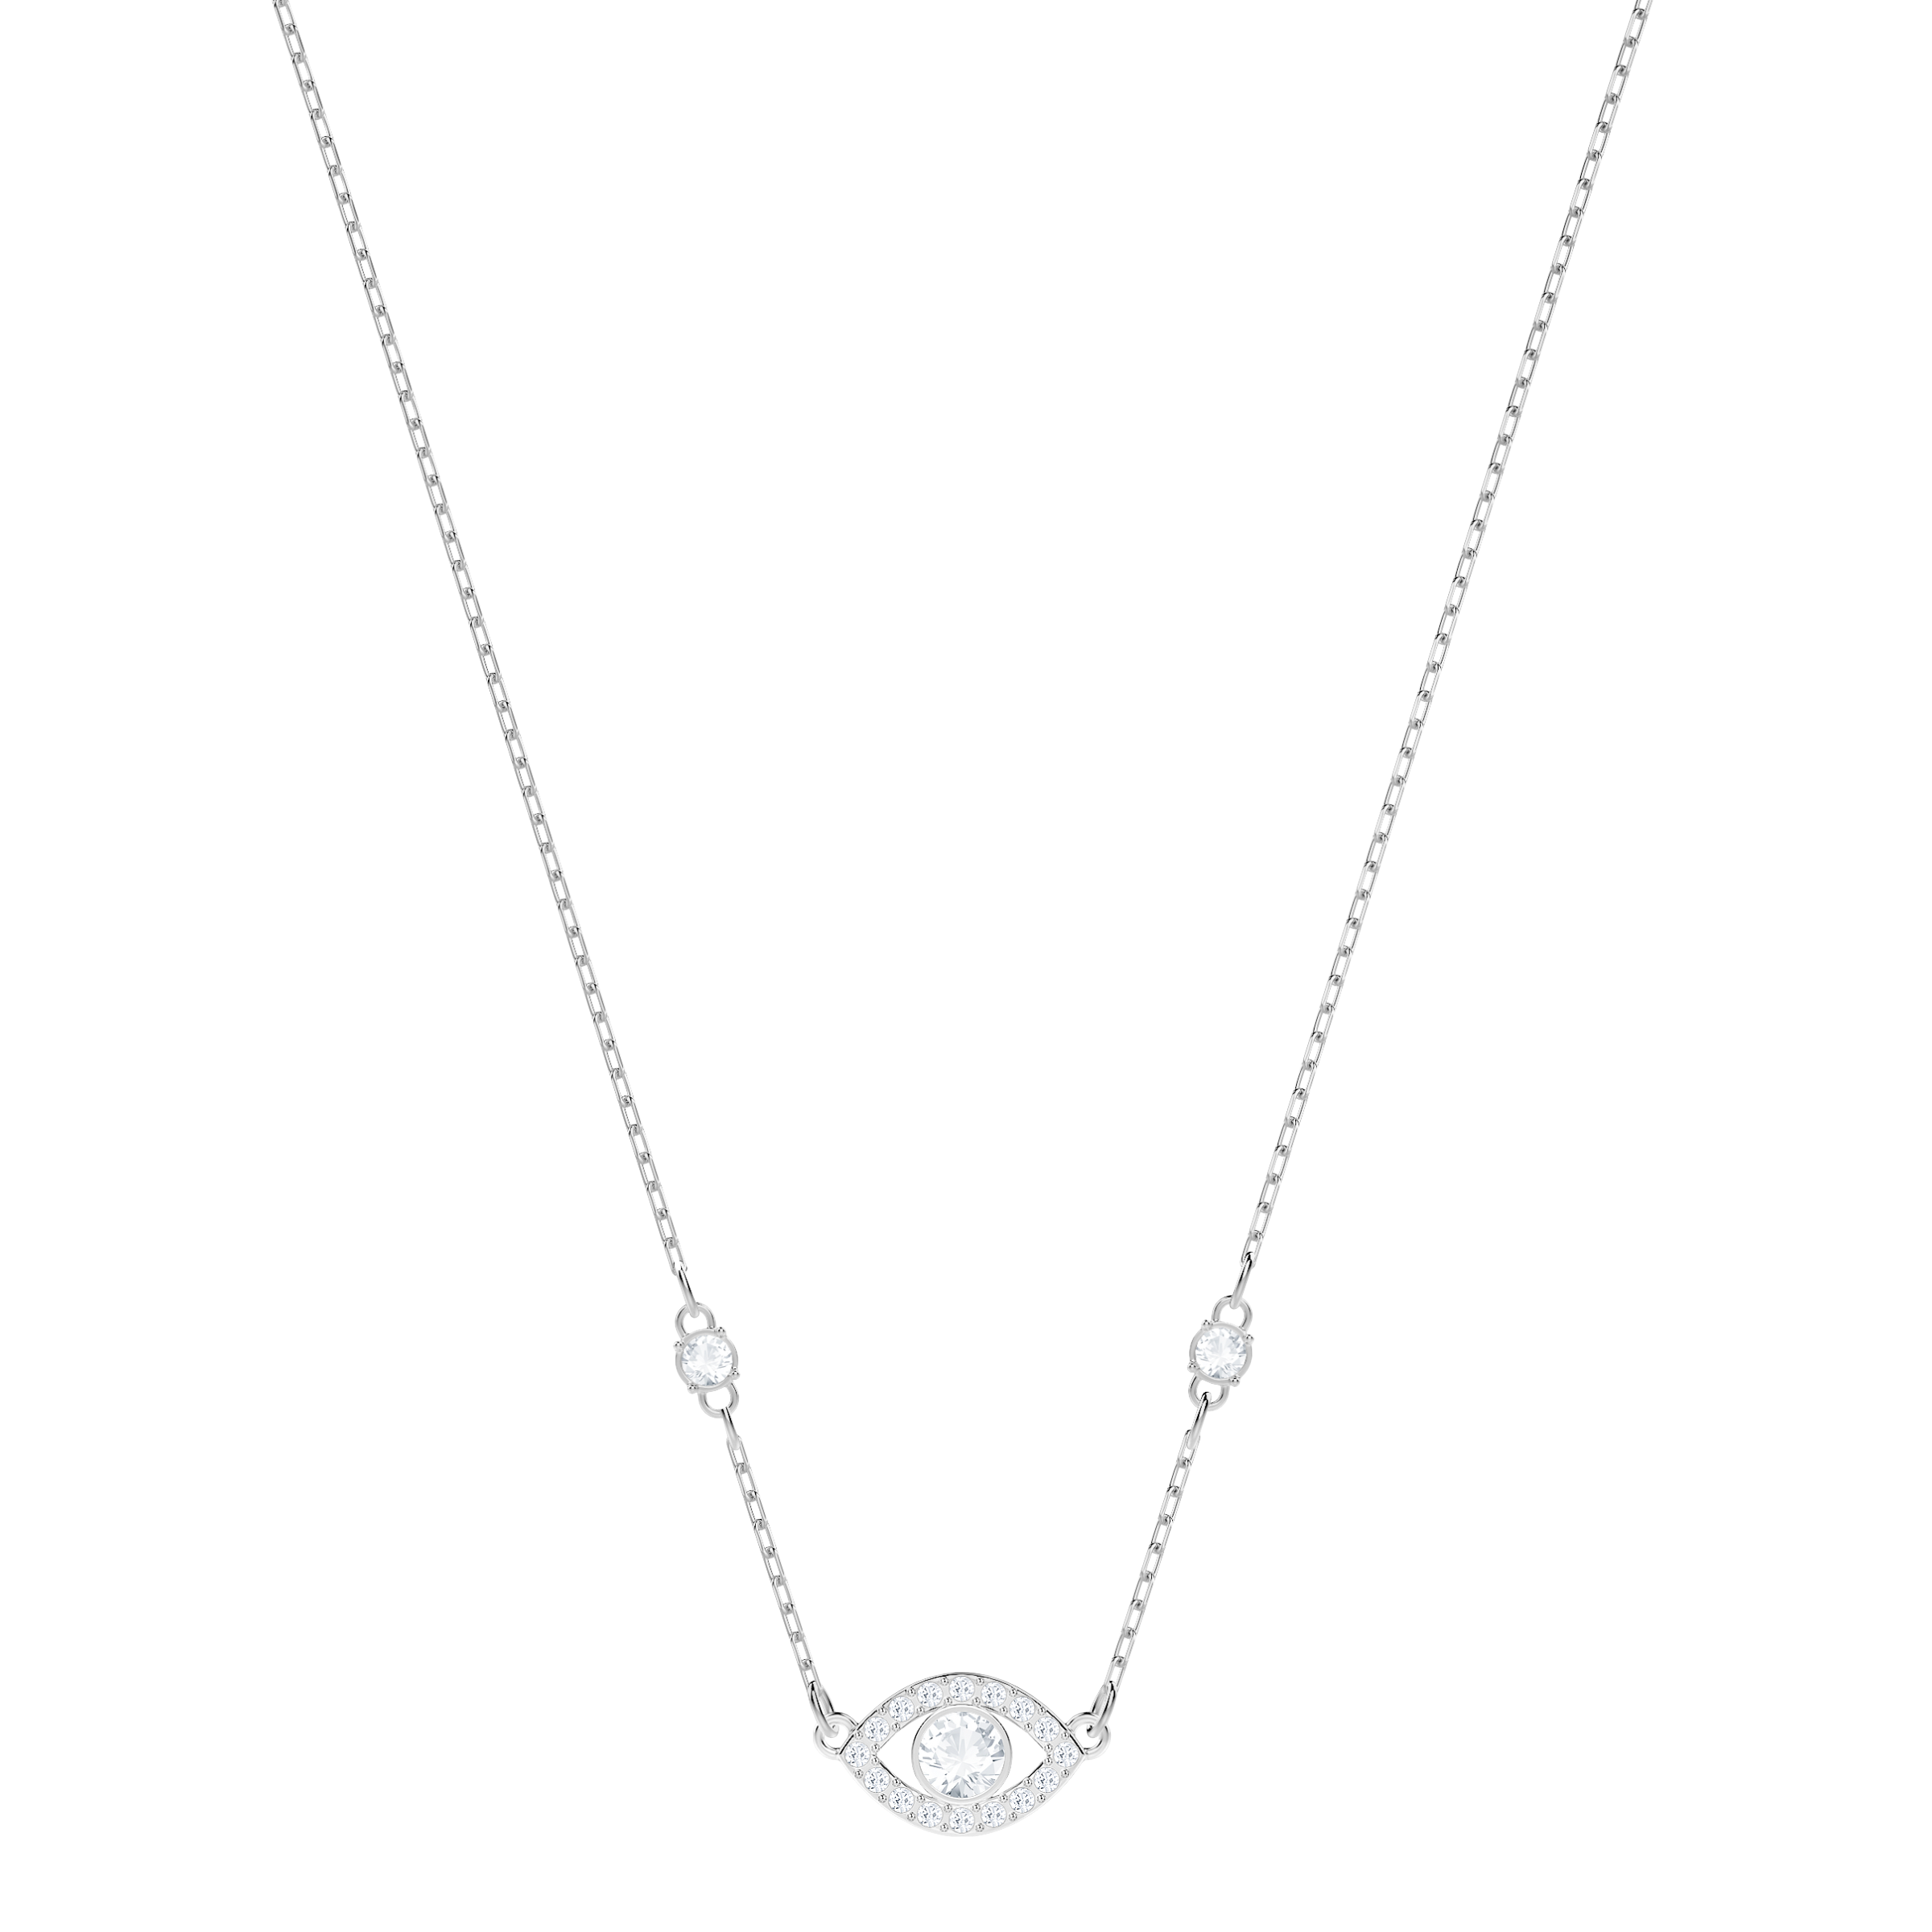 Luckily Evil Eye Necklace, White, Rhodium Plating